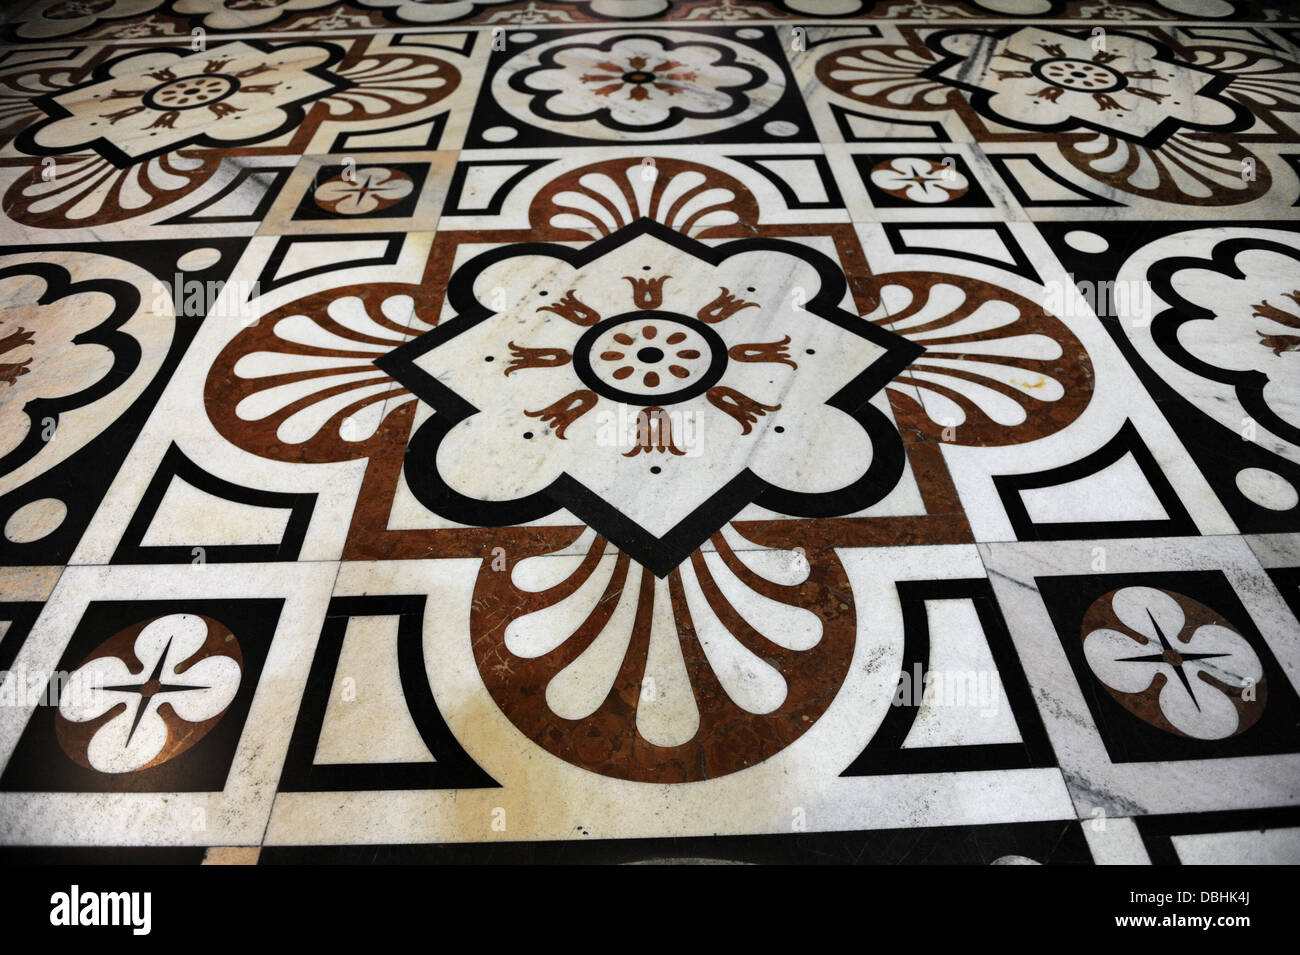 Italy. Milan. Cathedral. Polychrome marble from Candoglia, decorating the pavement inside the temple. Work of Pellegrino - Stock Image